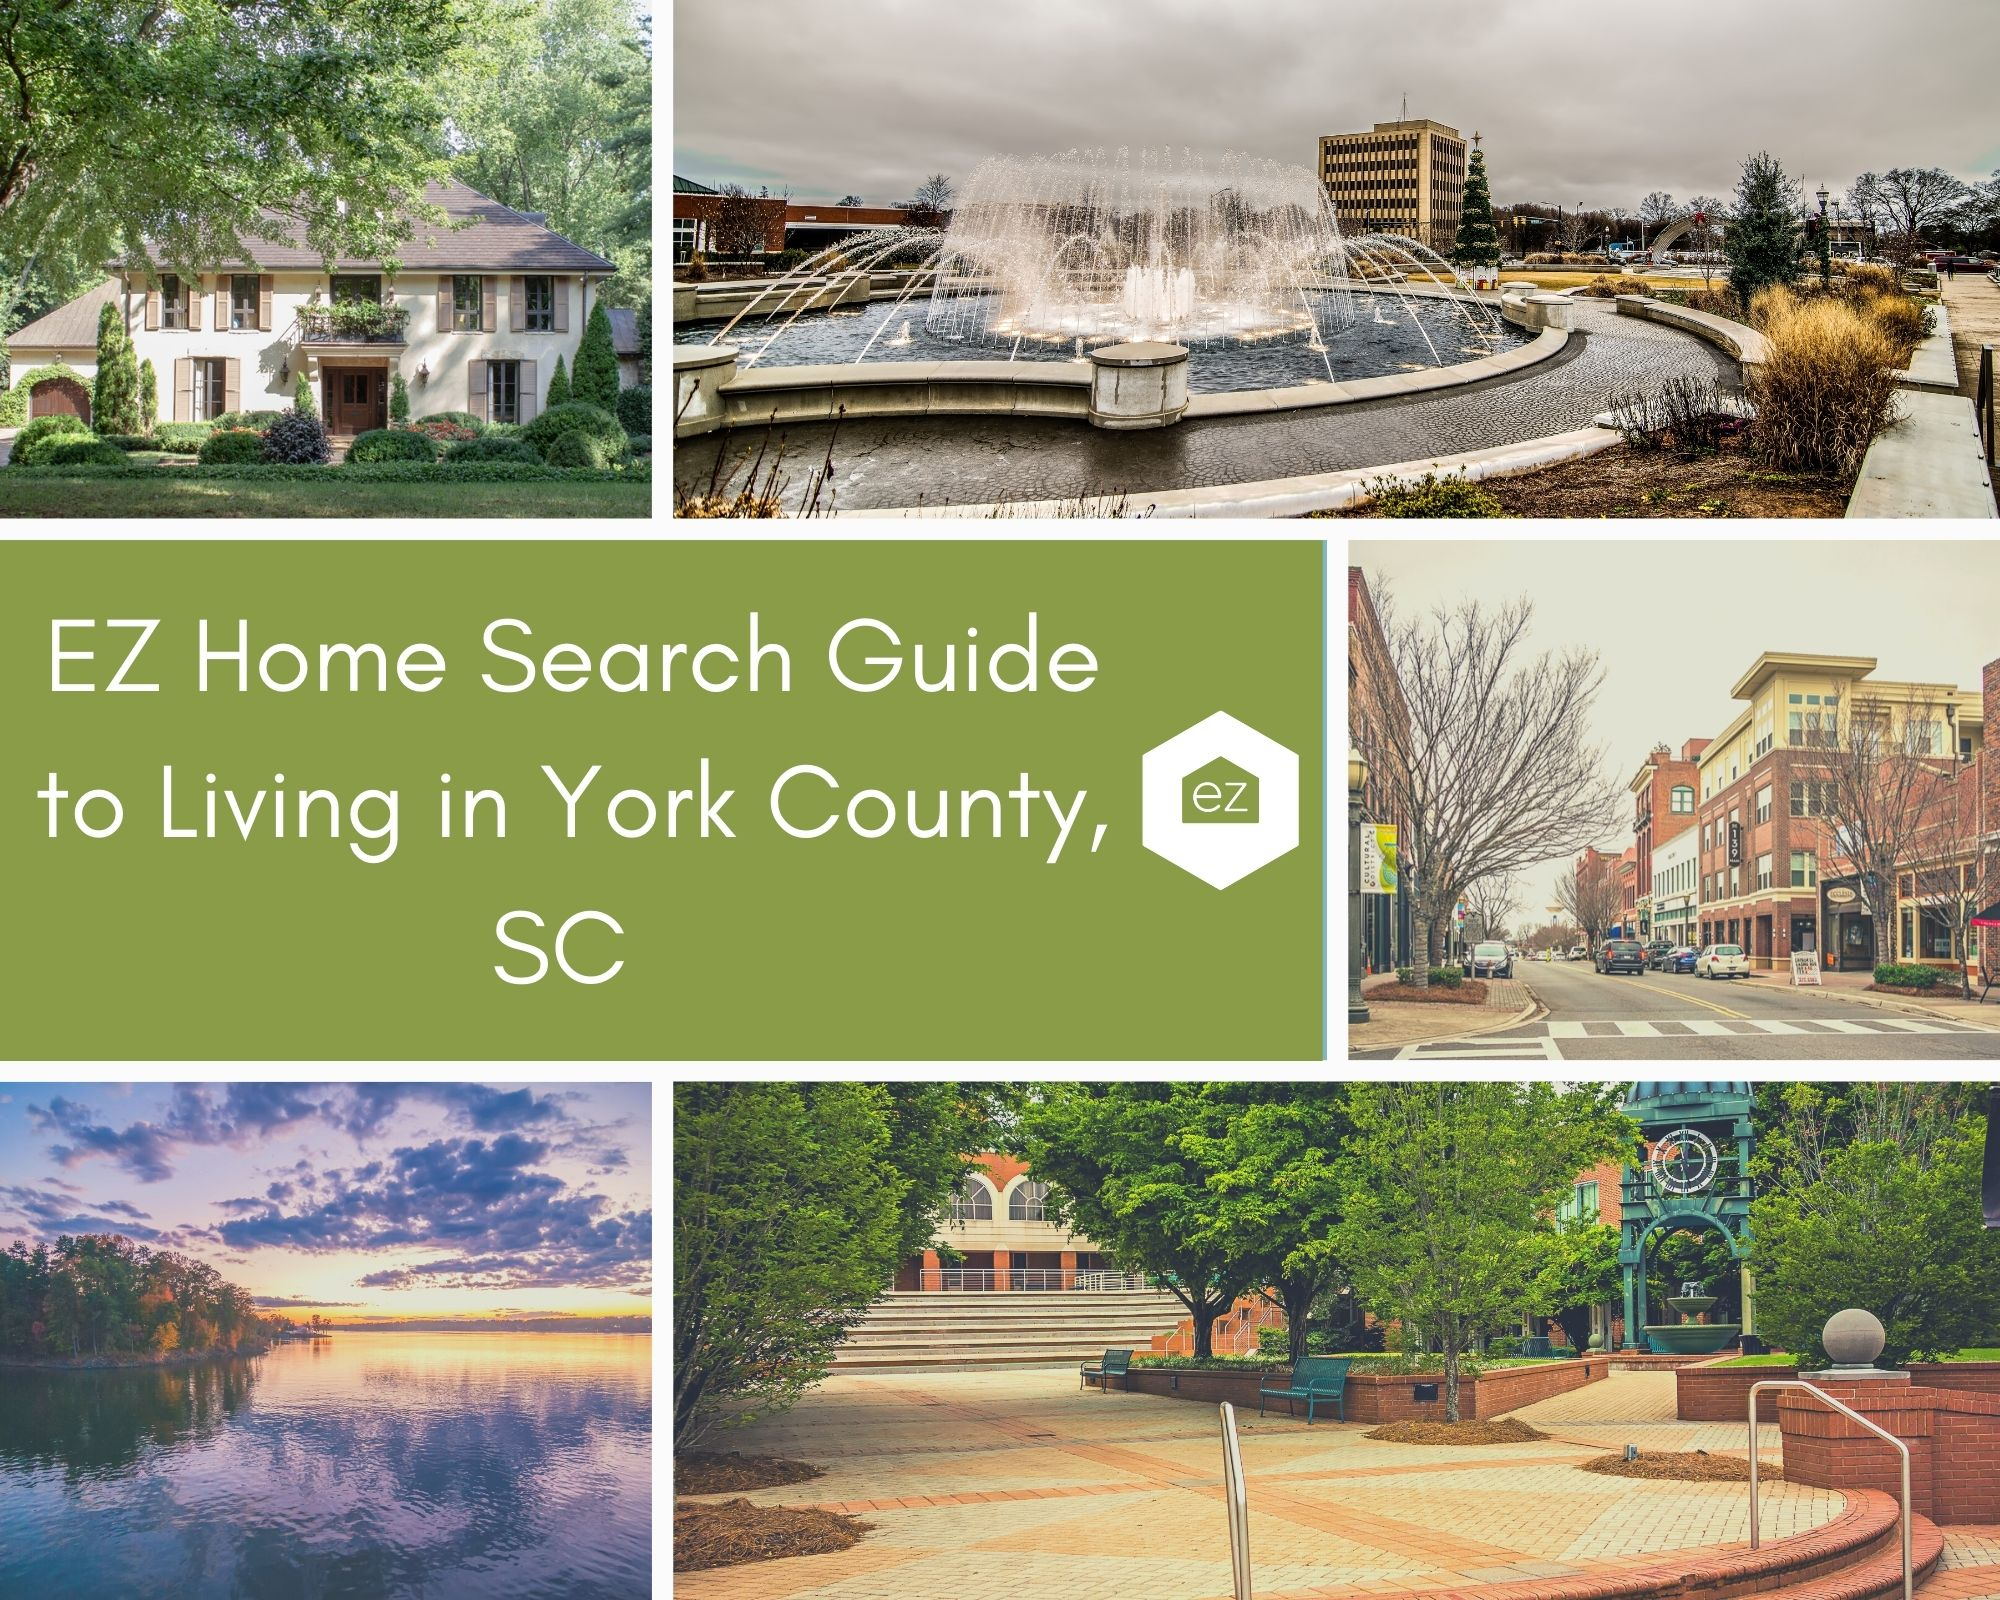 Photos of York County downtown, York County House, and Lake Wylie sunset